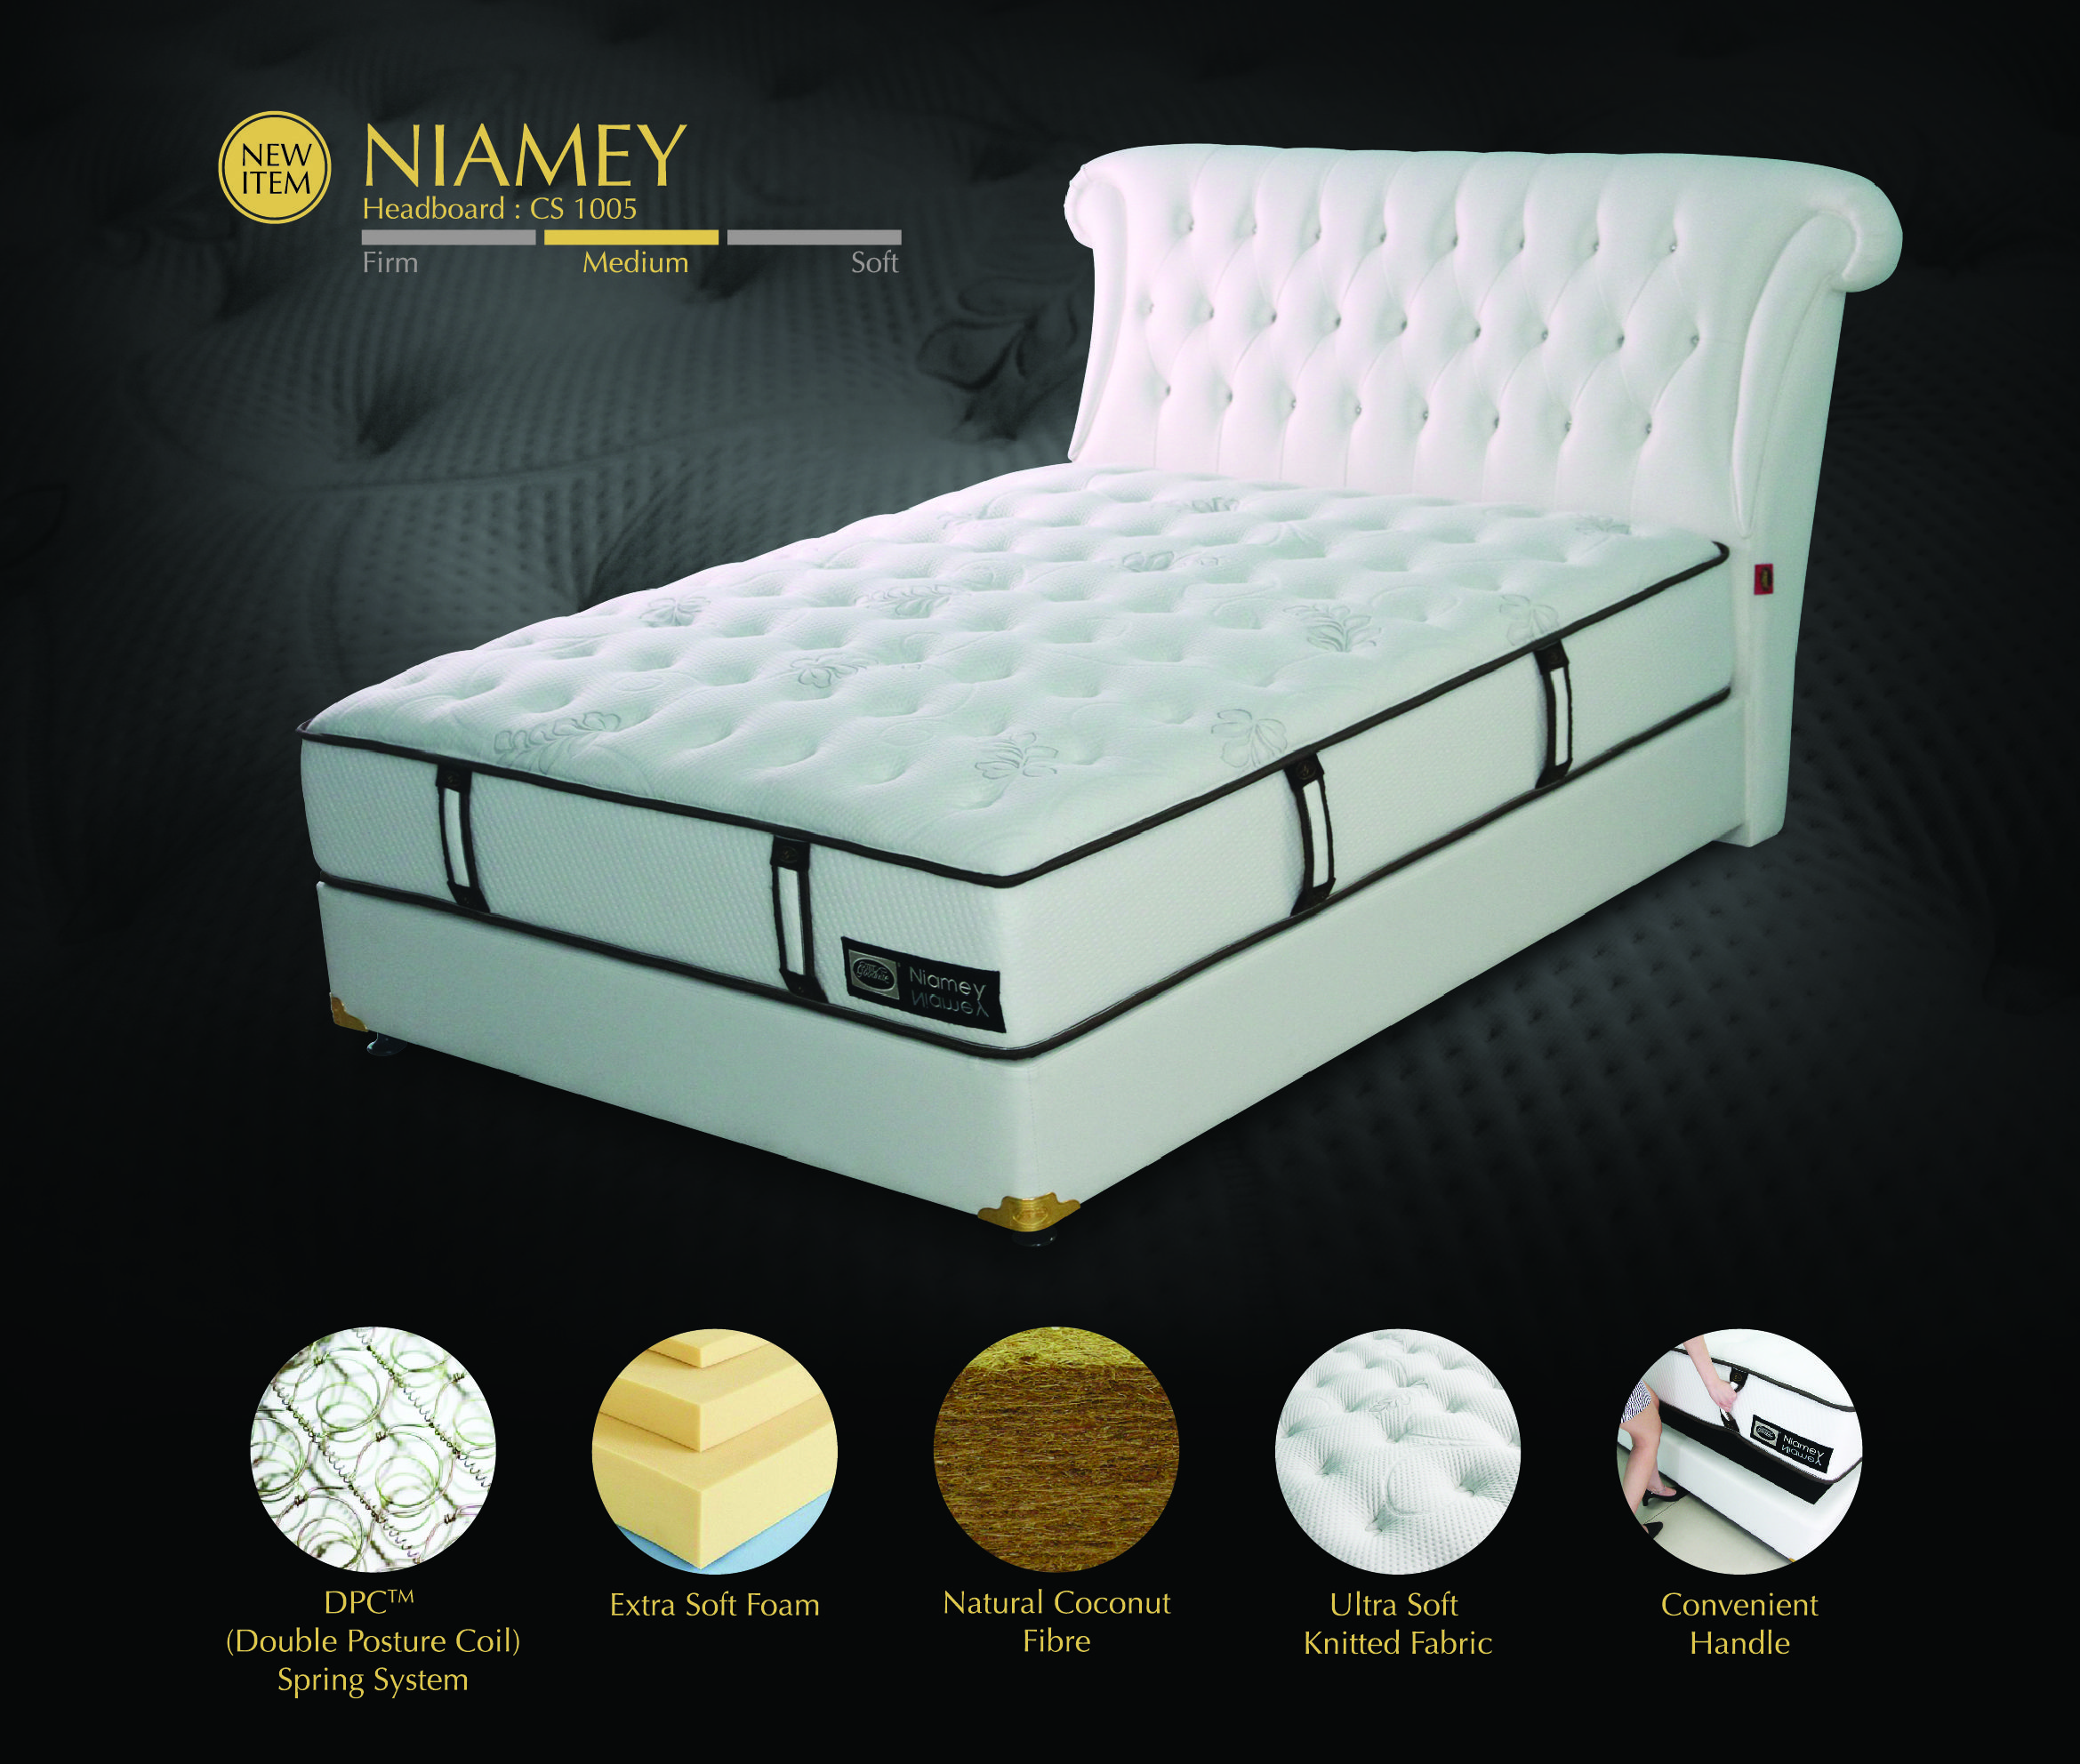 niamey goodnite mattress bedding pinterest